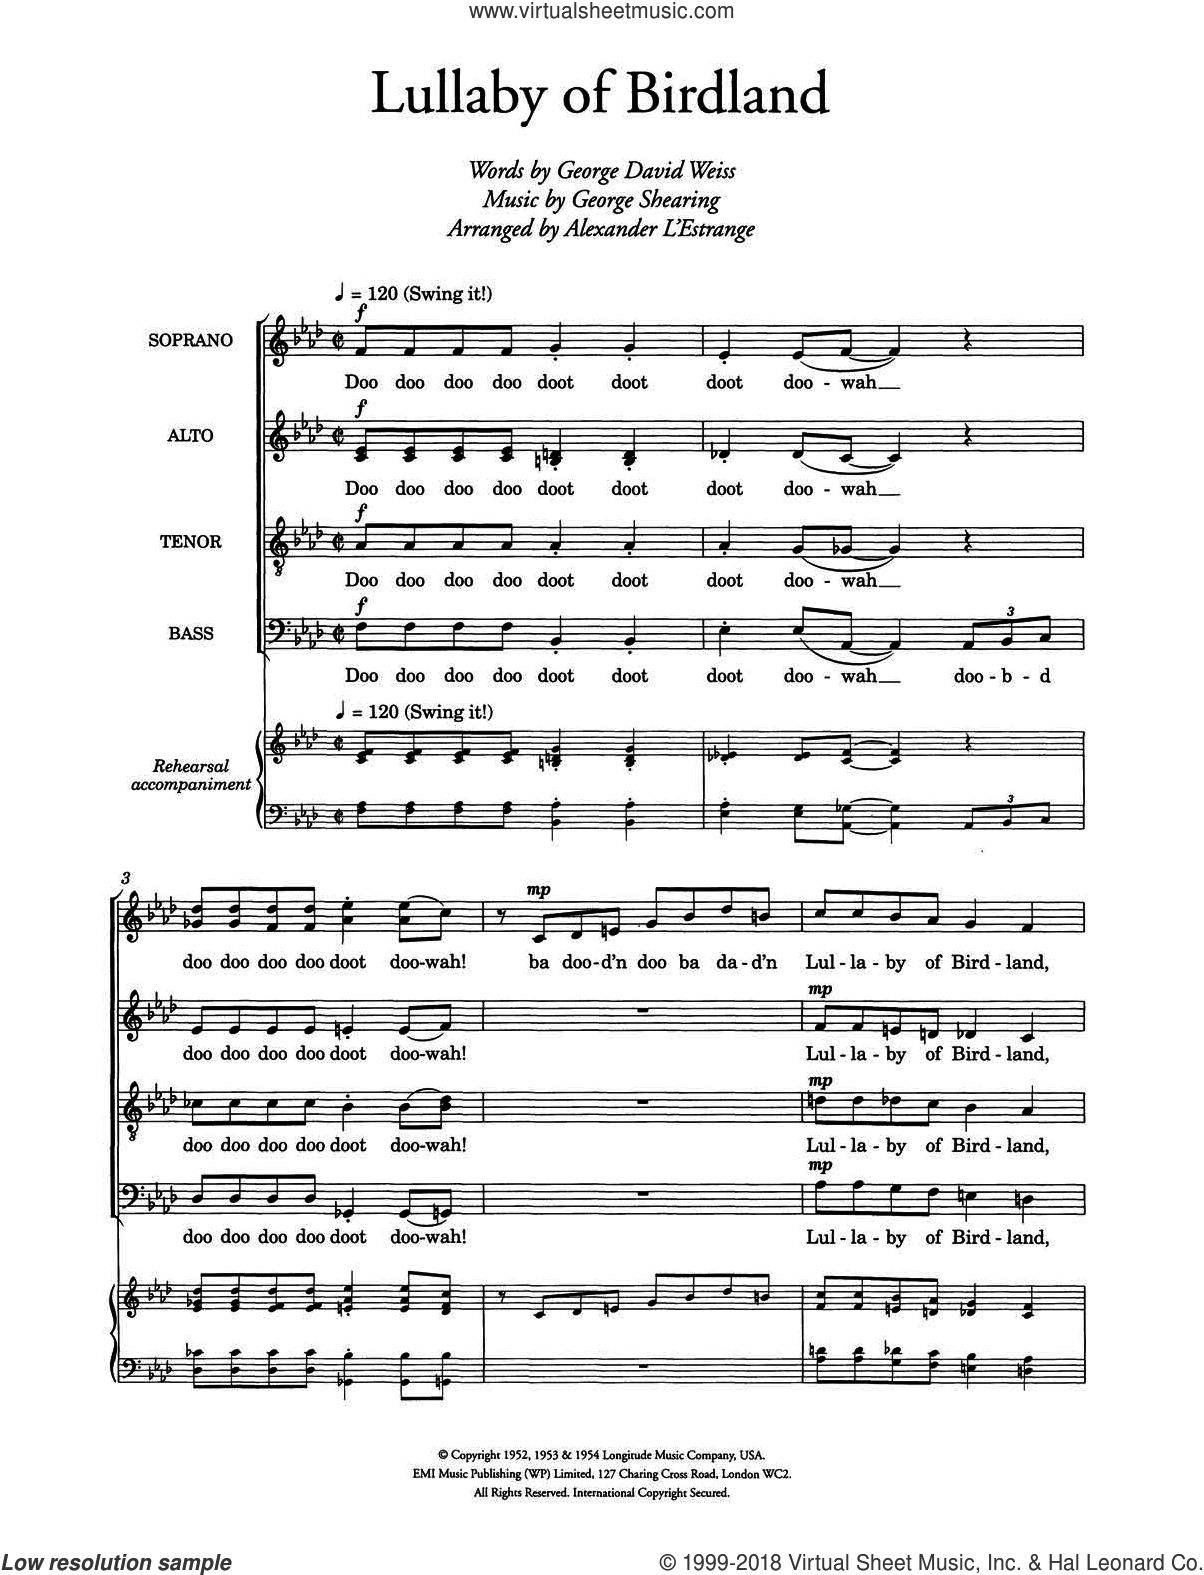 Lullaby Of Birdland (arr. Alexander L'Estrange) sheet music for choir by Ella Fitzgerald, George David Weiss and George Shearing, intermediate skill level